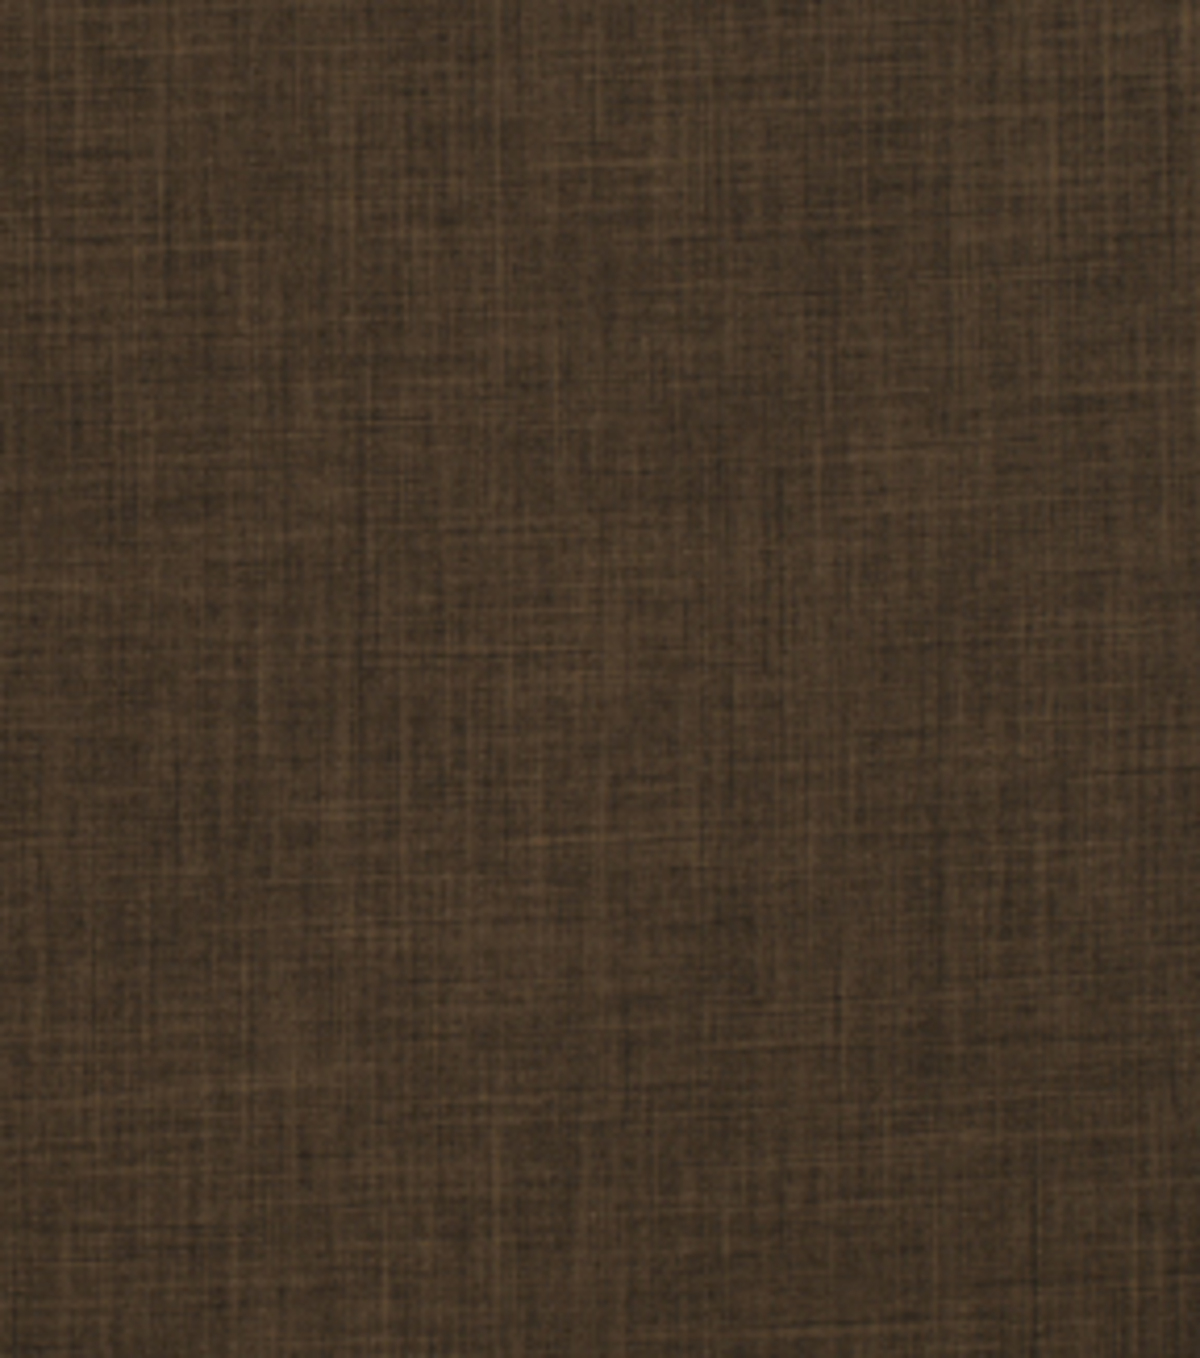 Home Decor 8\u0022x8\u0022 Fabric Swatch-Signature Series Adrift Java